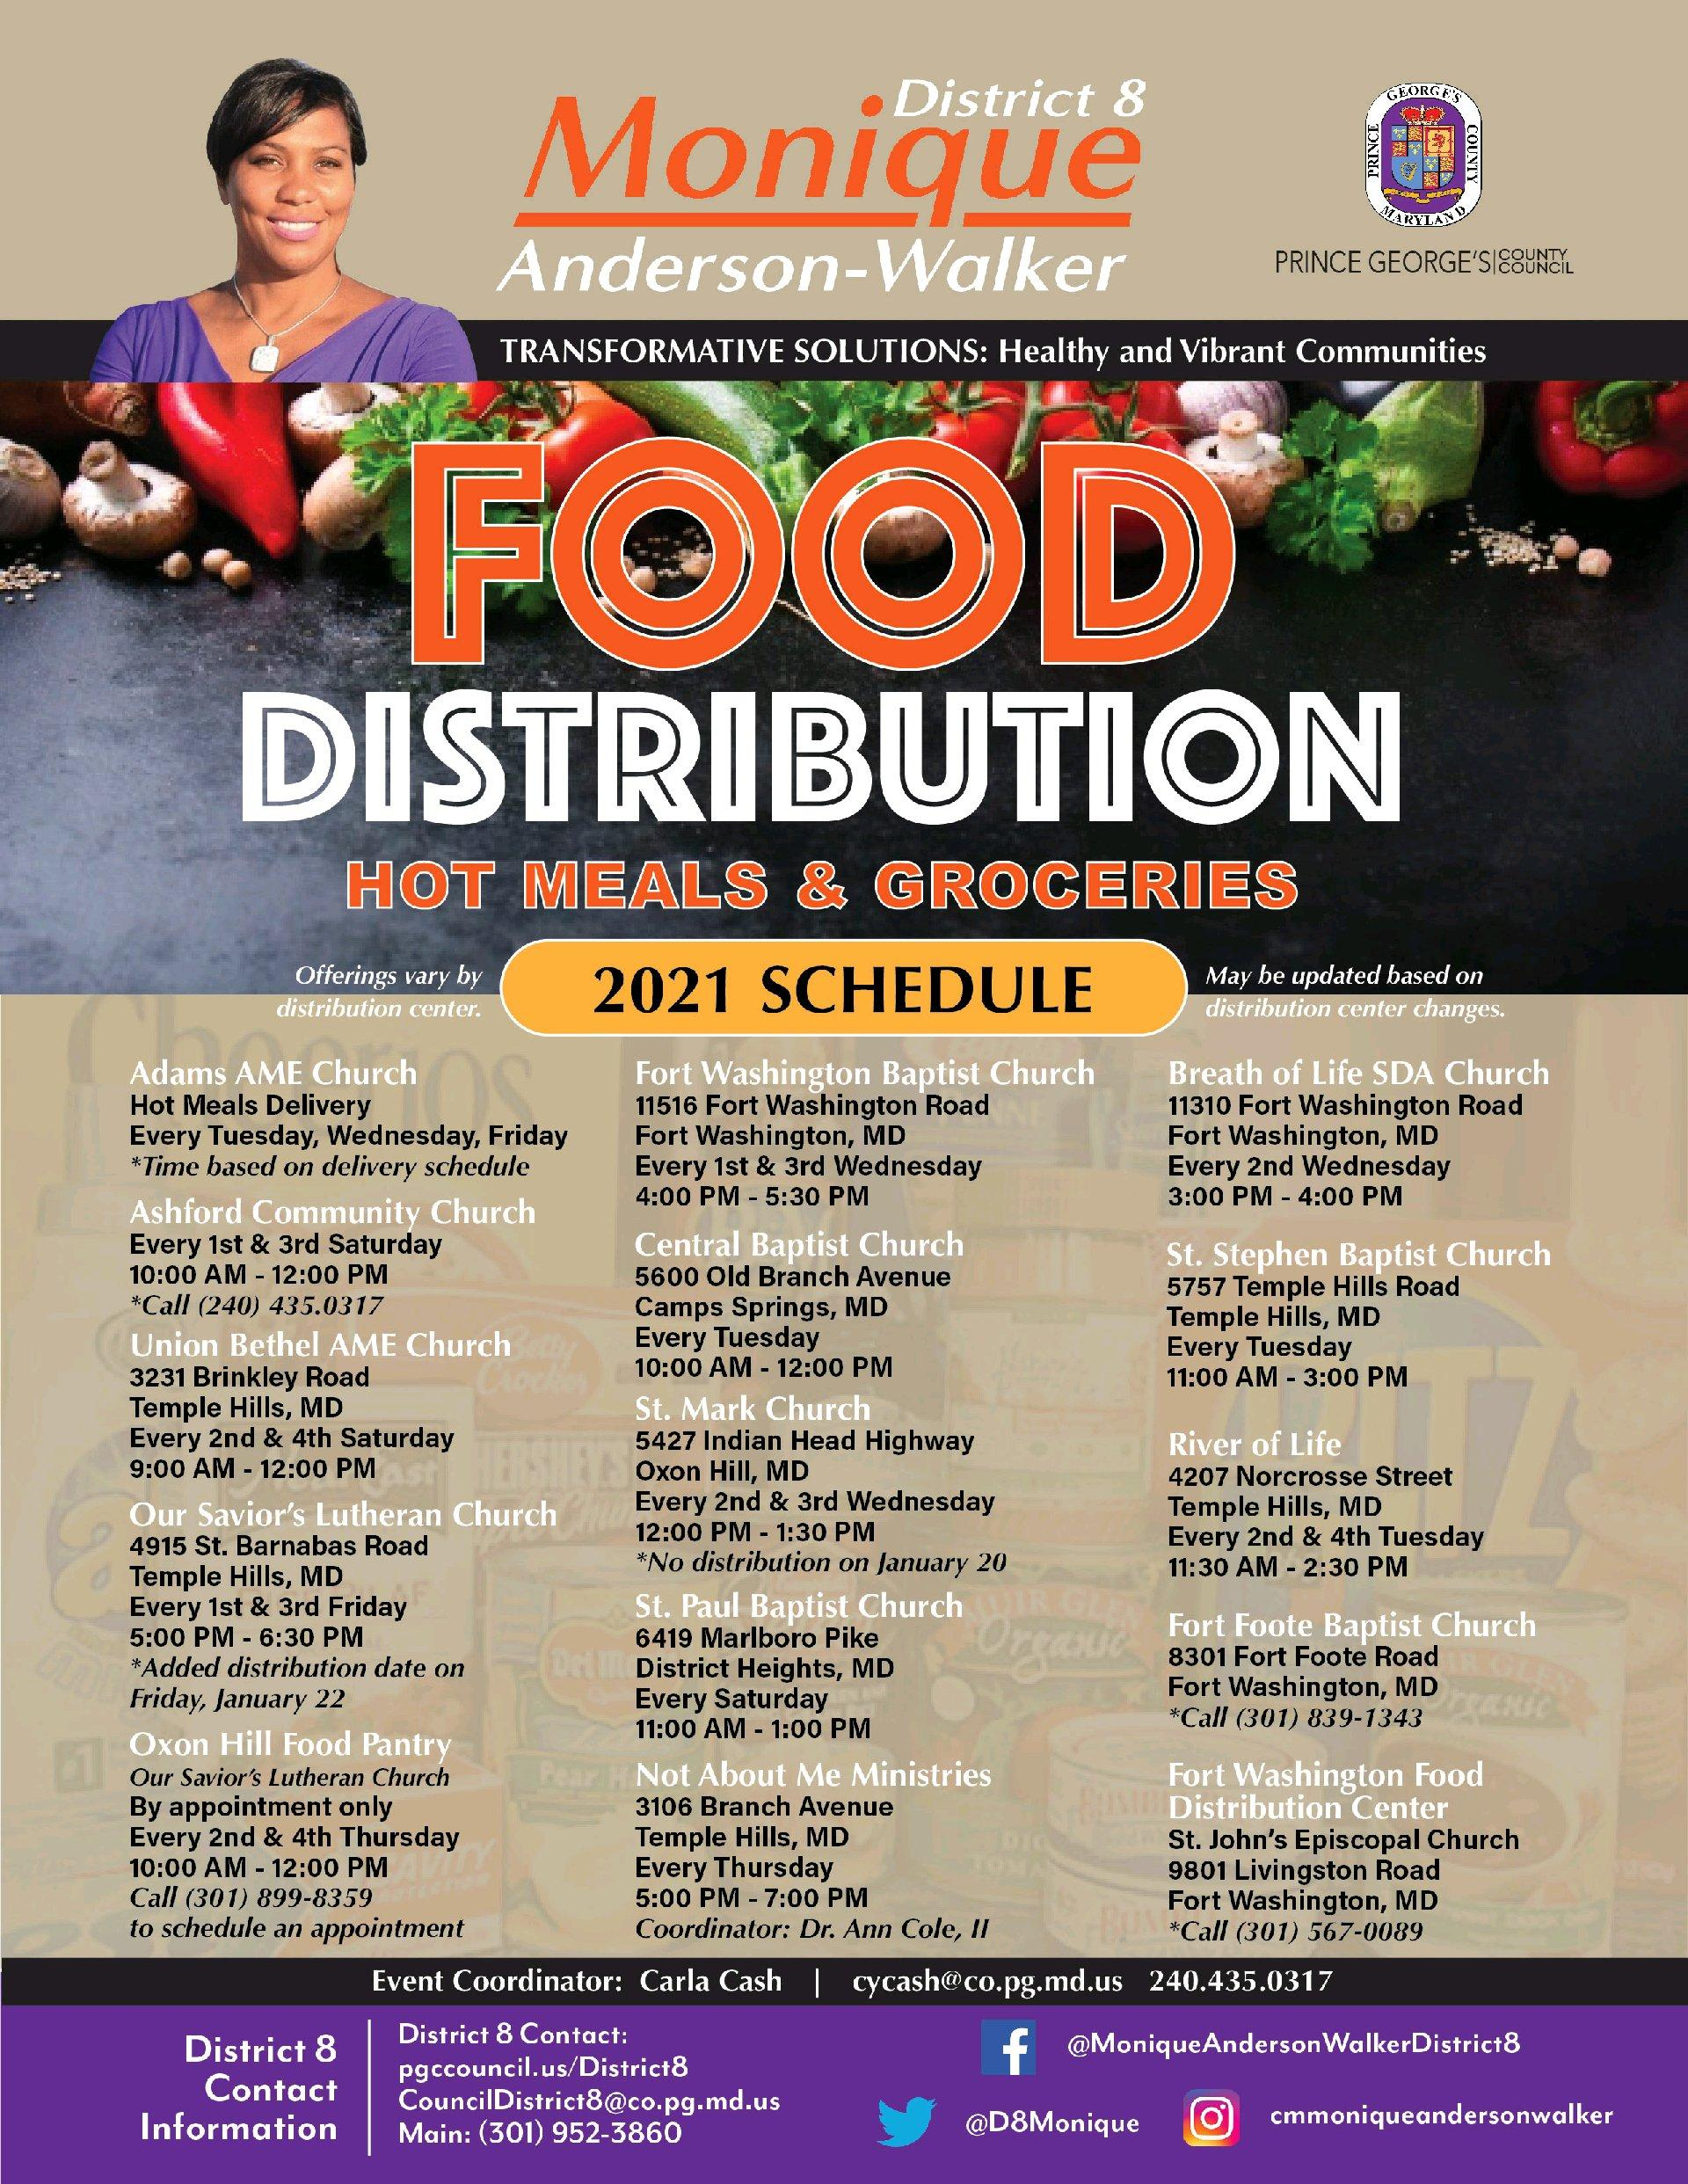 2021 Food Distribution Schedule for District 8 & Partners